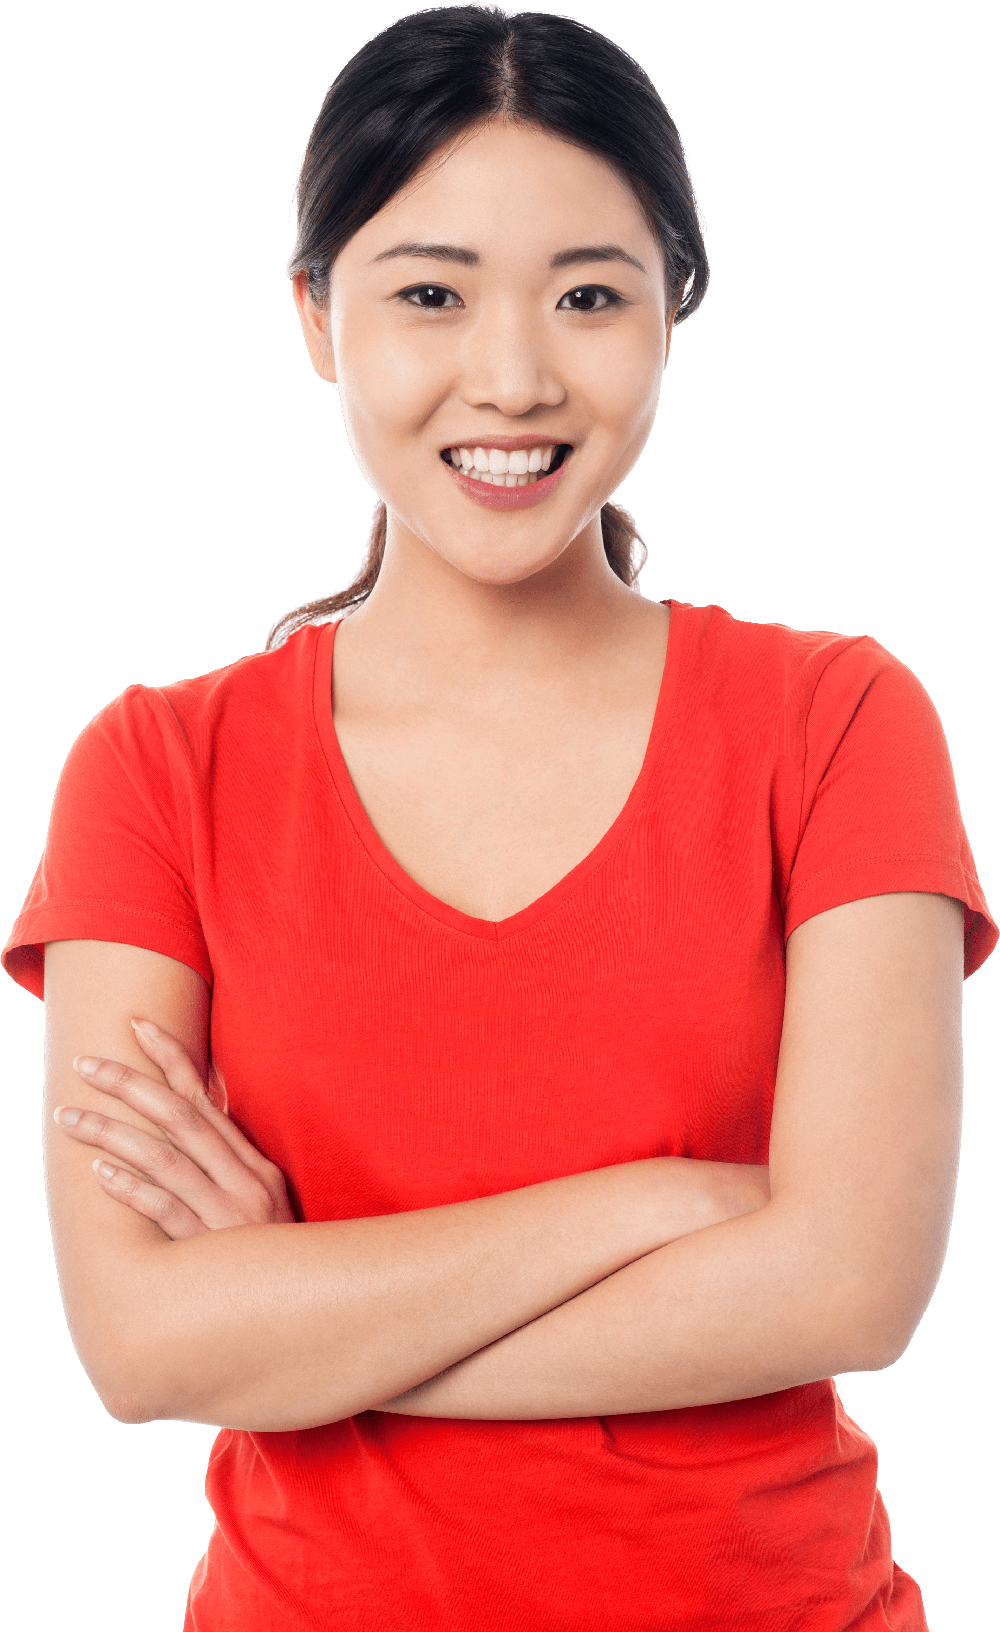 Asian Women PNG Vector, Clipart, PSD.